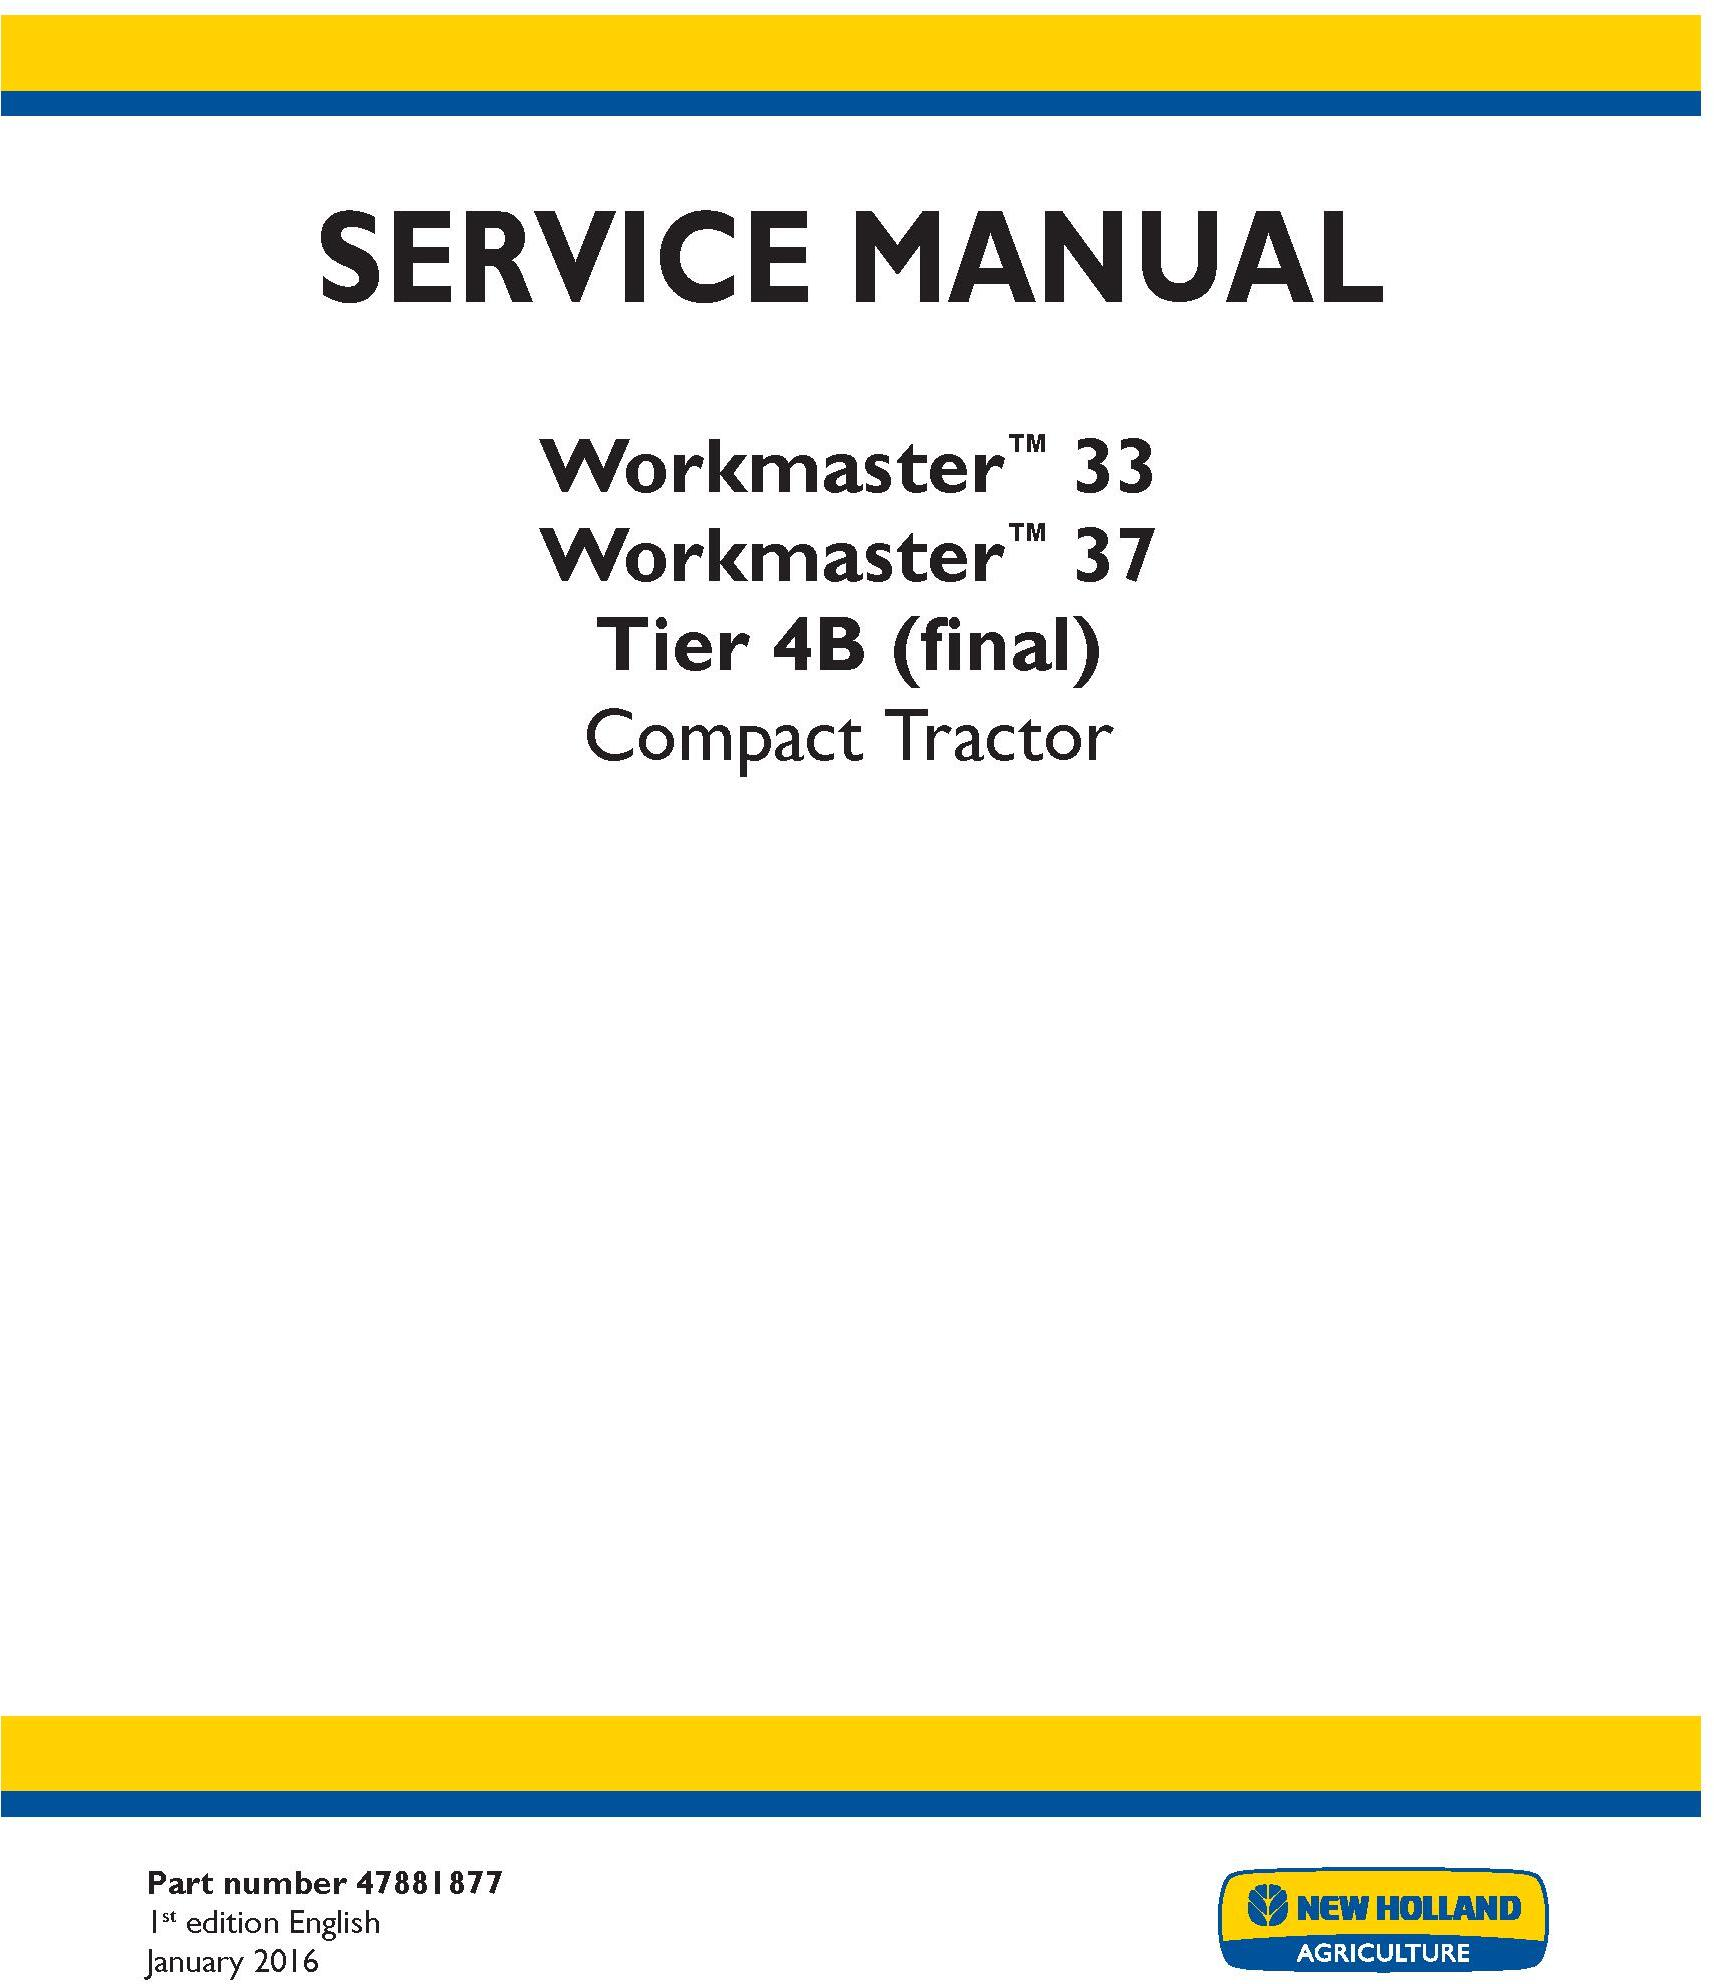 John Deere New Holland Workmaster 33, 37 Tier 4B (final) Tractor Complete Service Manual (North America) - 19431